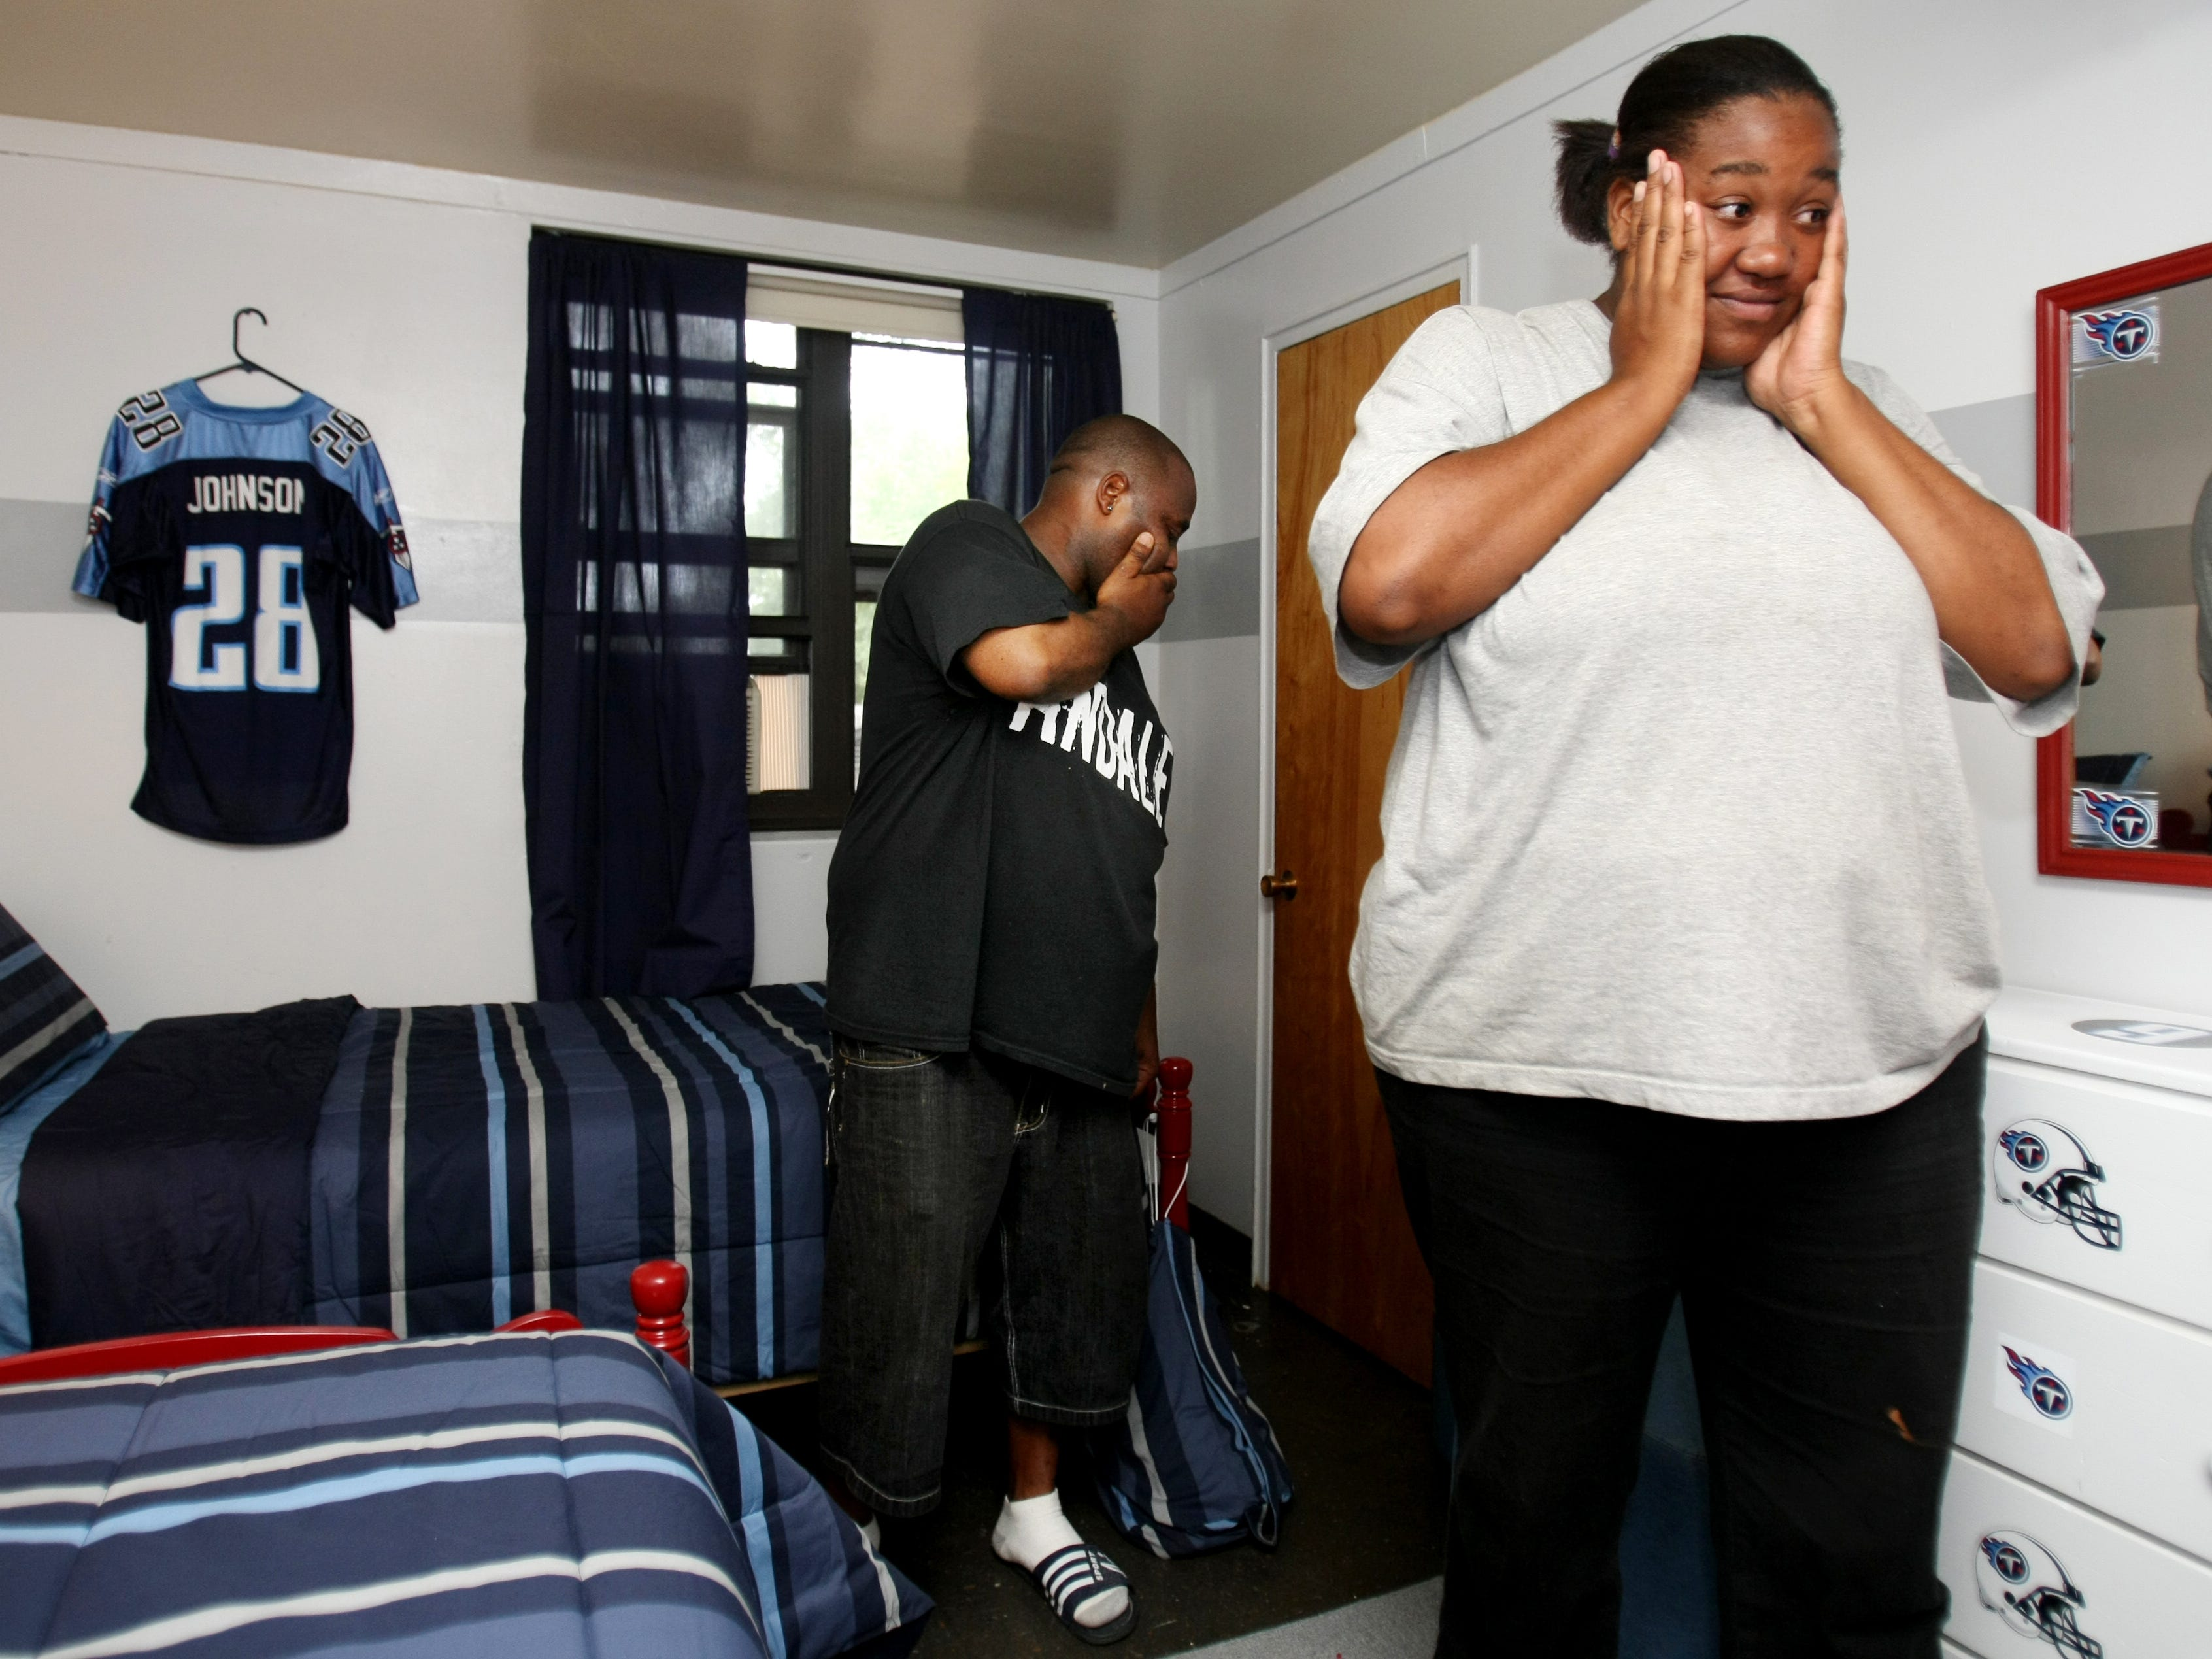 James A. Cayce Homes resident Tara Malone, right, 27, is surprised after seeing her sons' newly designed bedroom Sept. 26, 2009. Project Redesign is a program that provides furniture for families in immediate crisis and does room redesigns for needy families. The organization's primary focus is the James A. Cayce Homes, Nashville's largest and most at-risk public housing development.